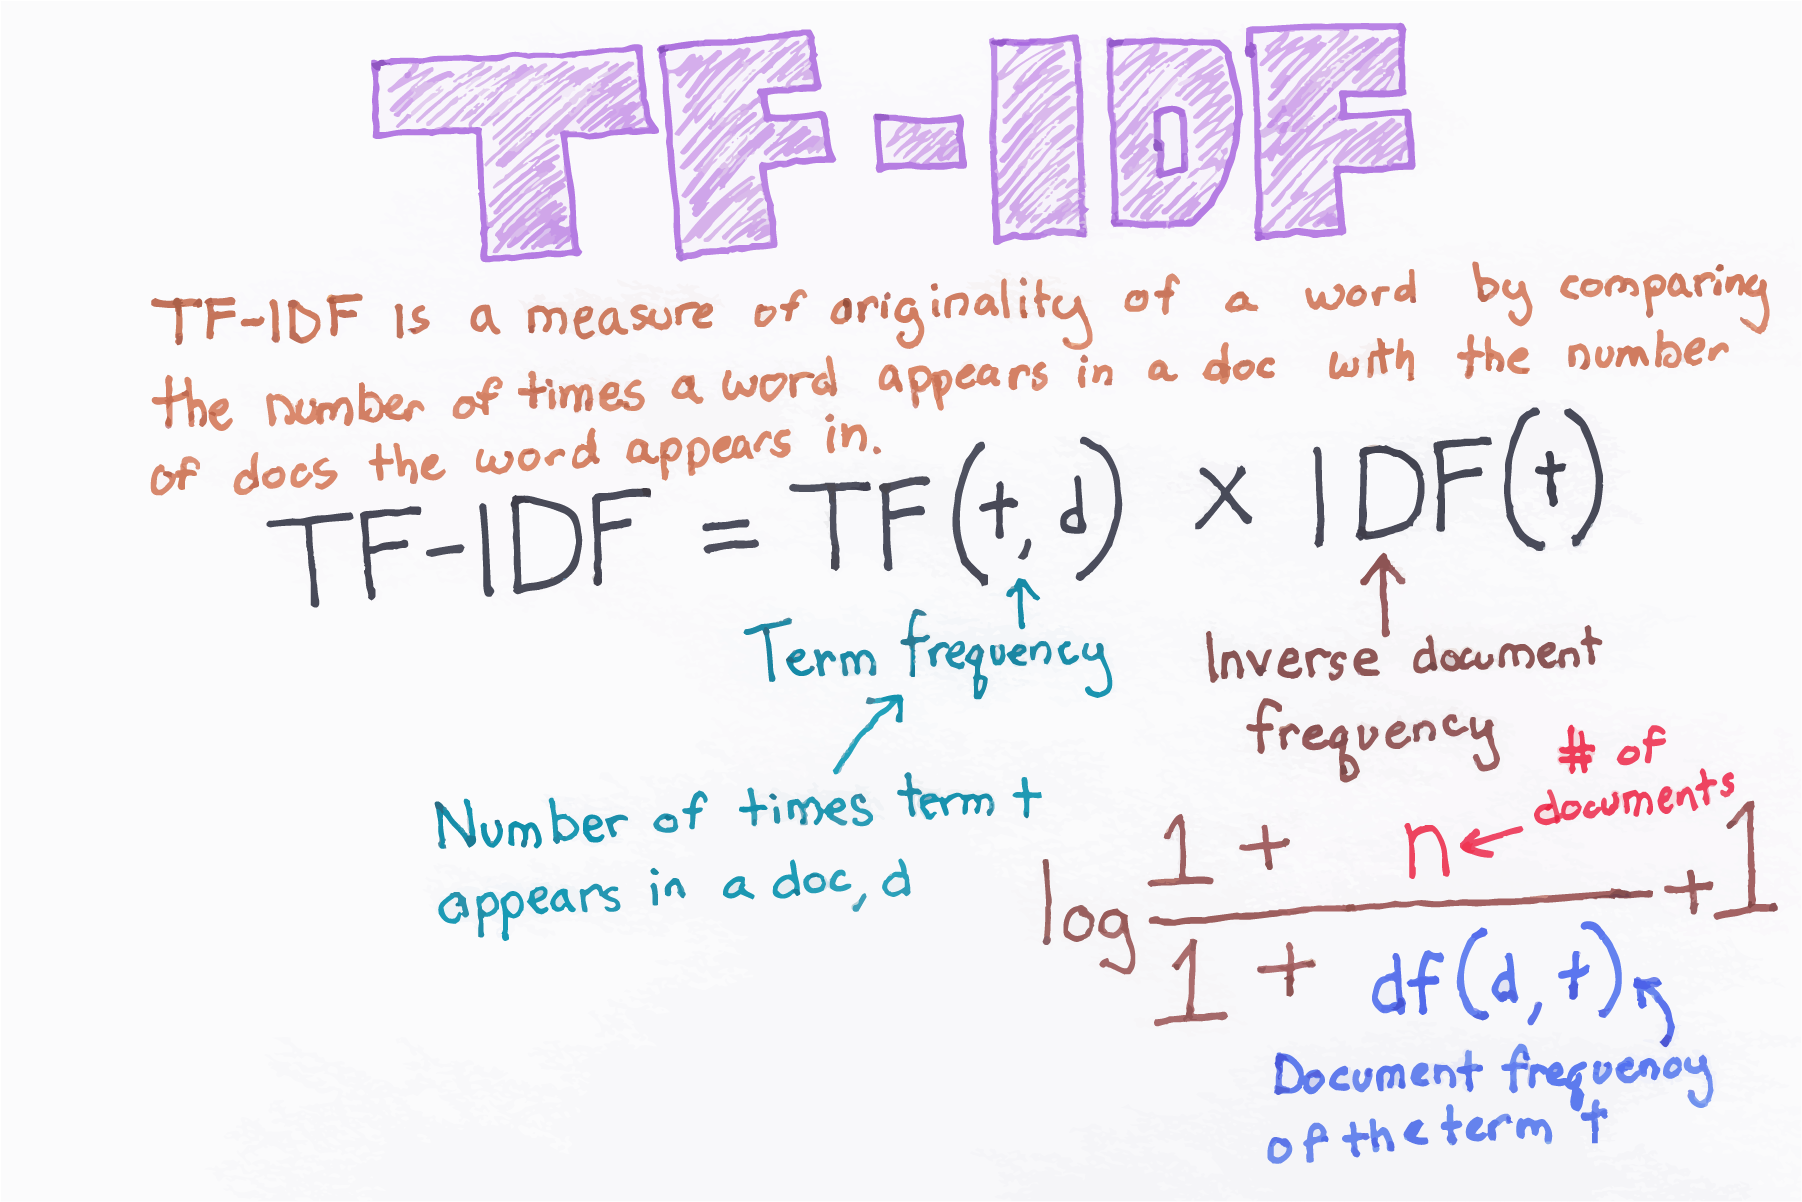 Term Frequency Inverse Document Frequency